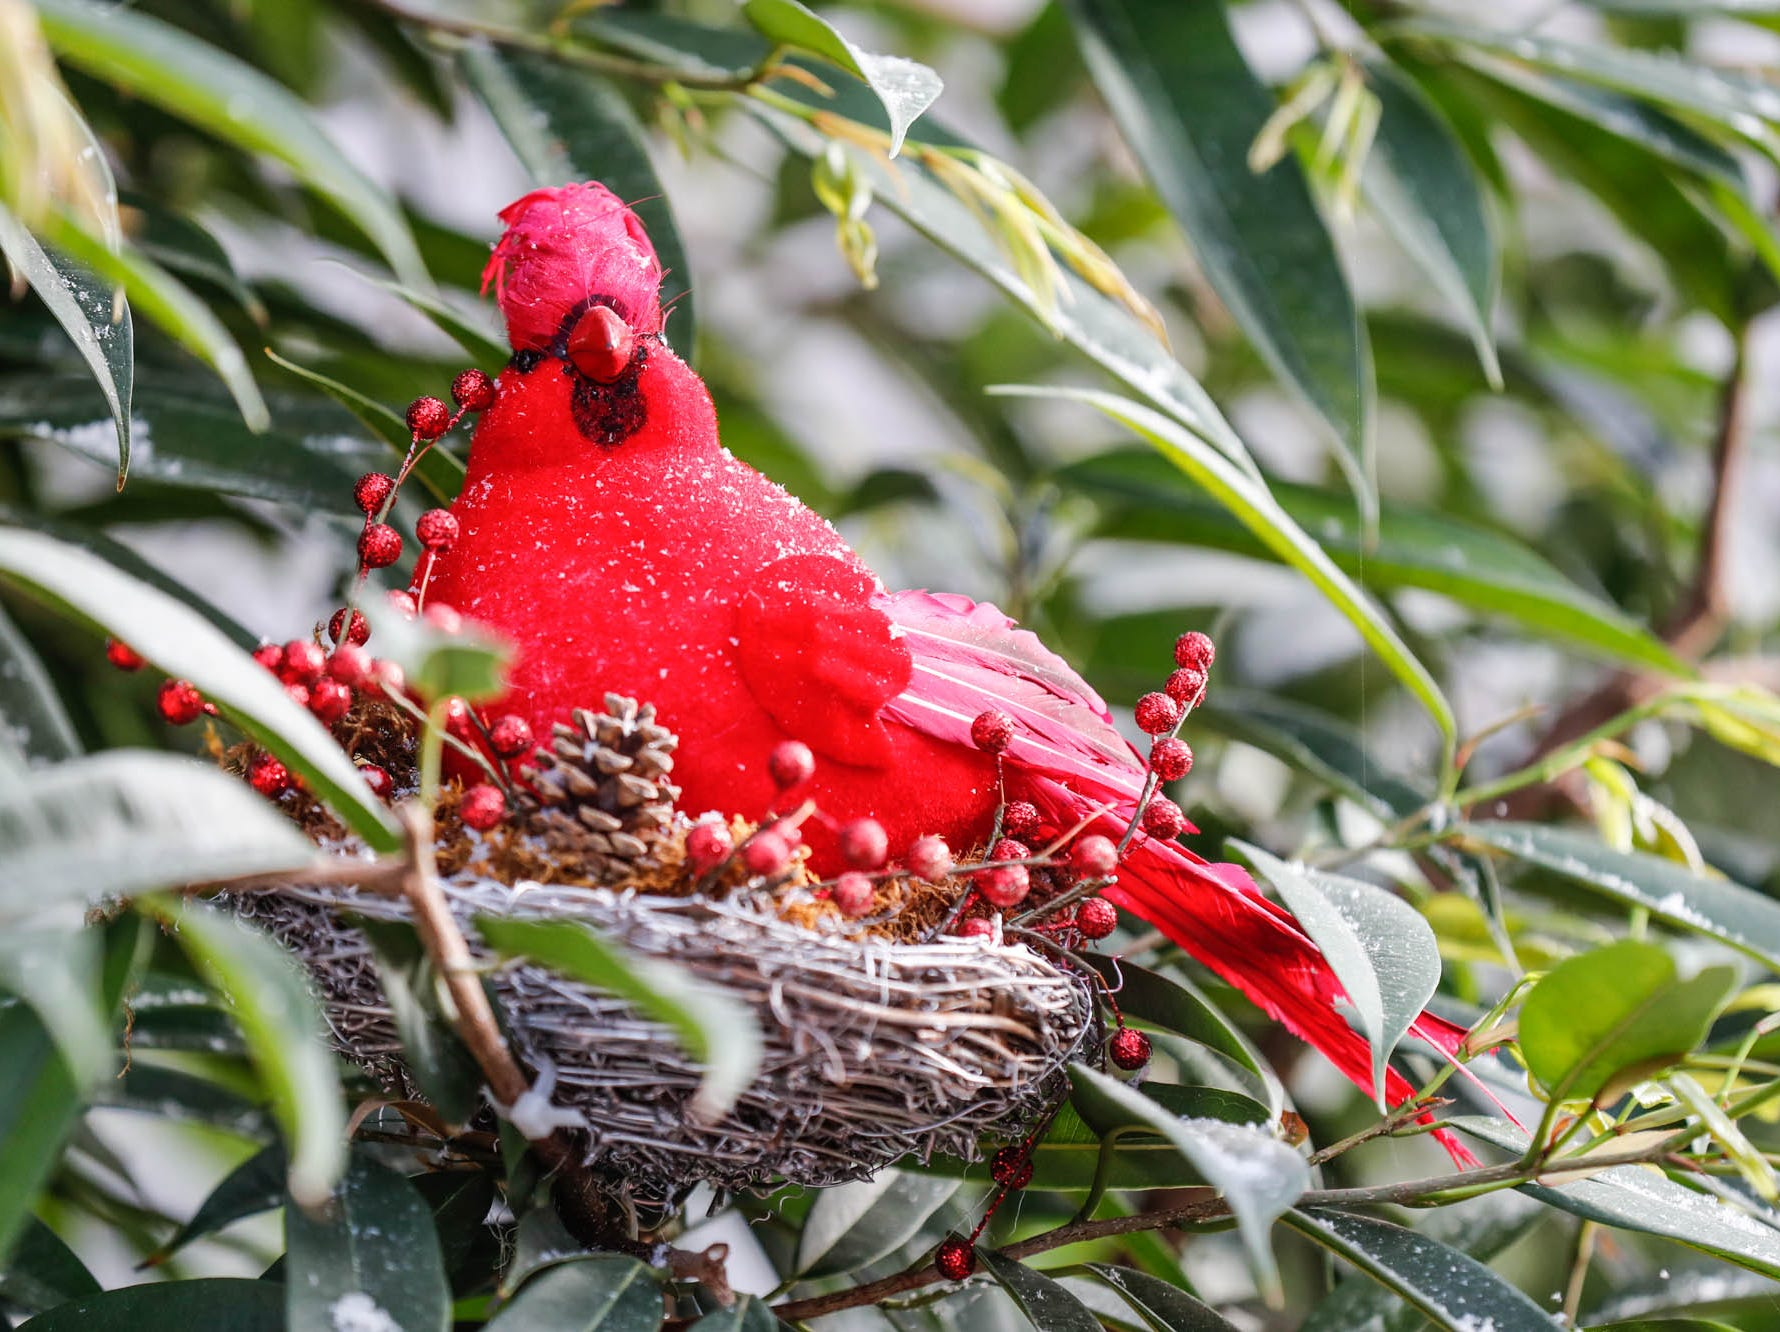 A for cardinal nests in a tree in the Conservatory Crossing holiday display at the Garfield Park Conservatory on Saturday, Dec. 29, 2018.